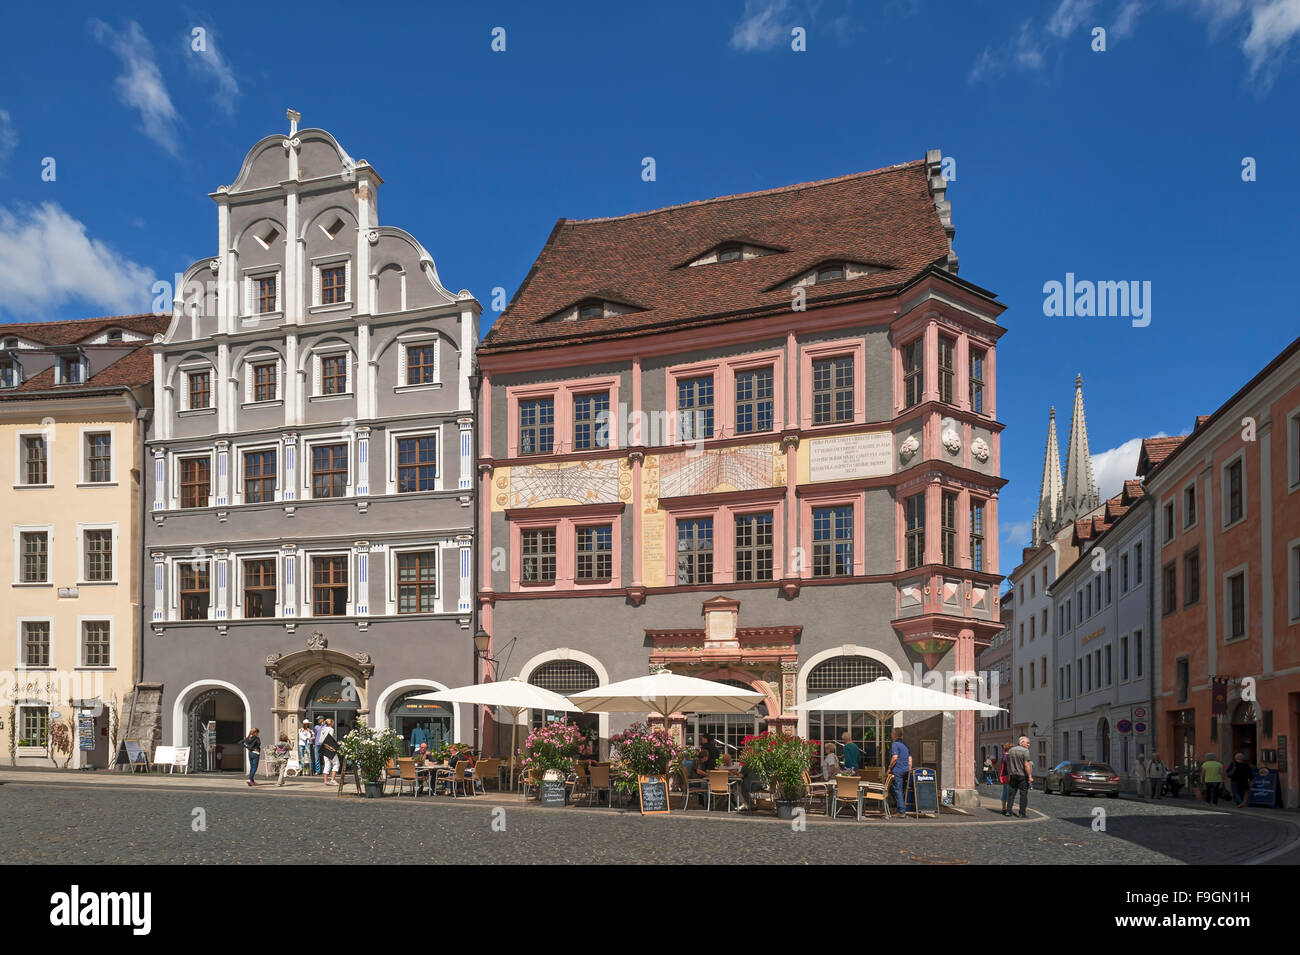 Old town council apothecary, two sundials, house with whispering arch left, Untermarkt, Görlitz, Upper Lusatia, - Stock Image